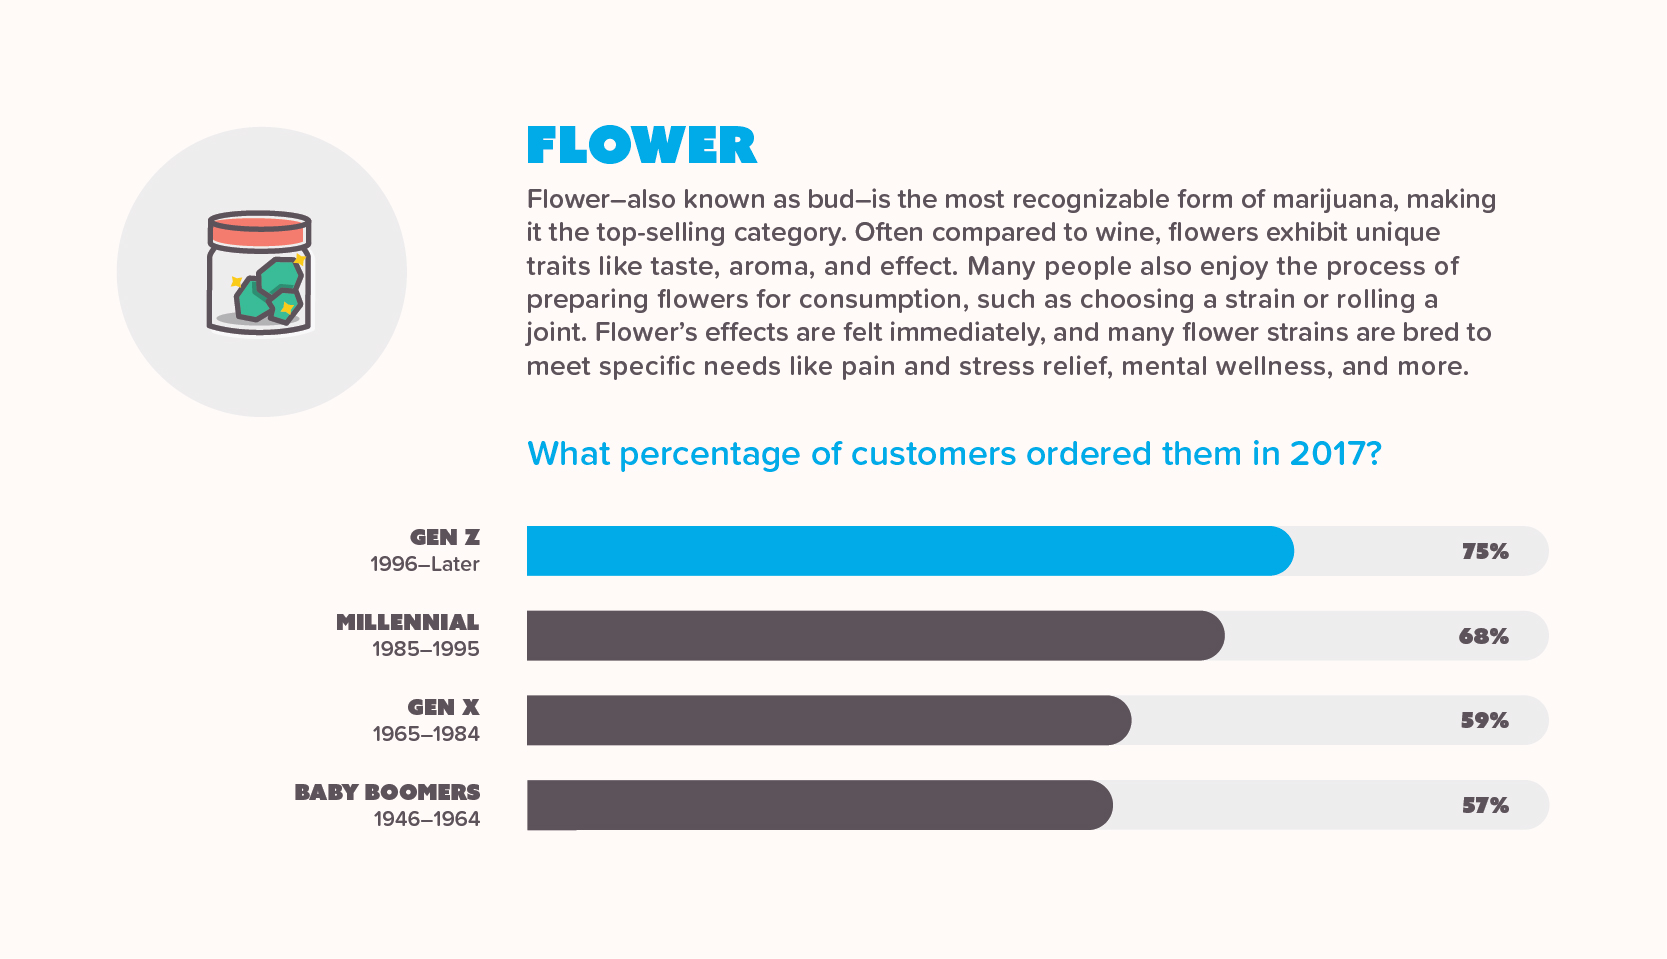 Infographic showing flower sales per generation in 2017